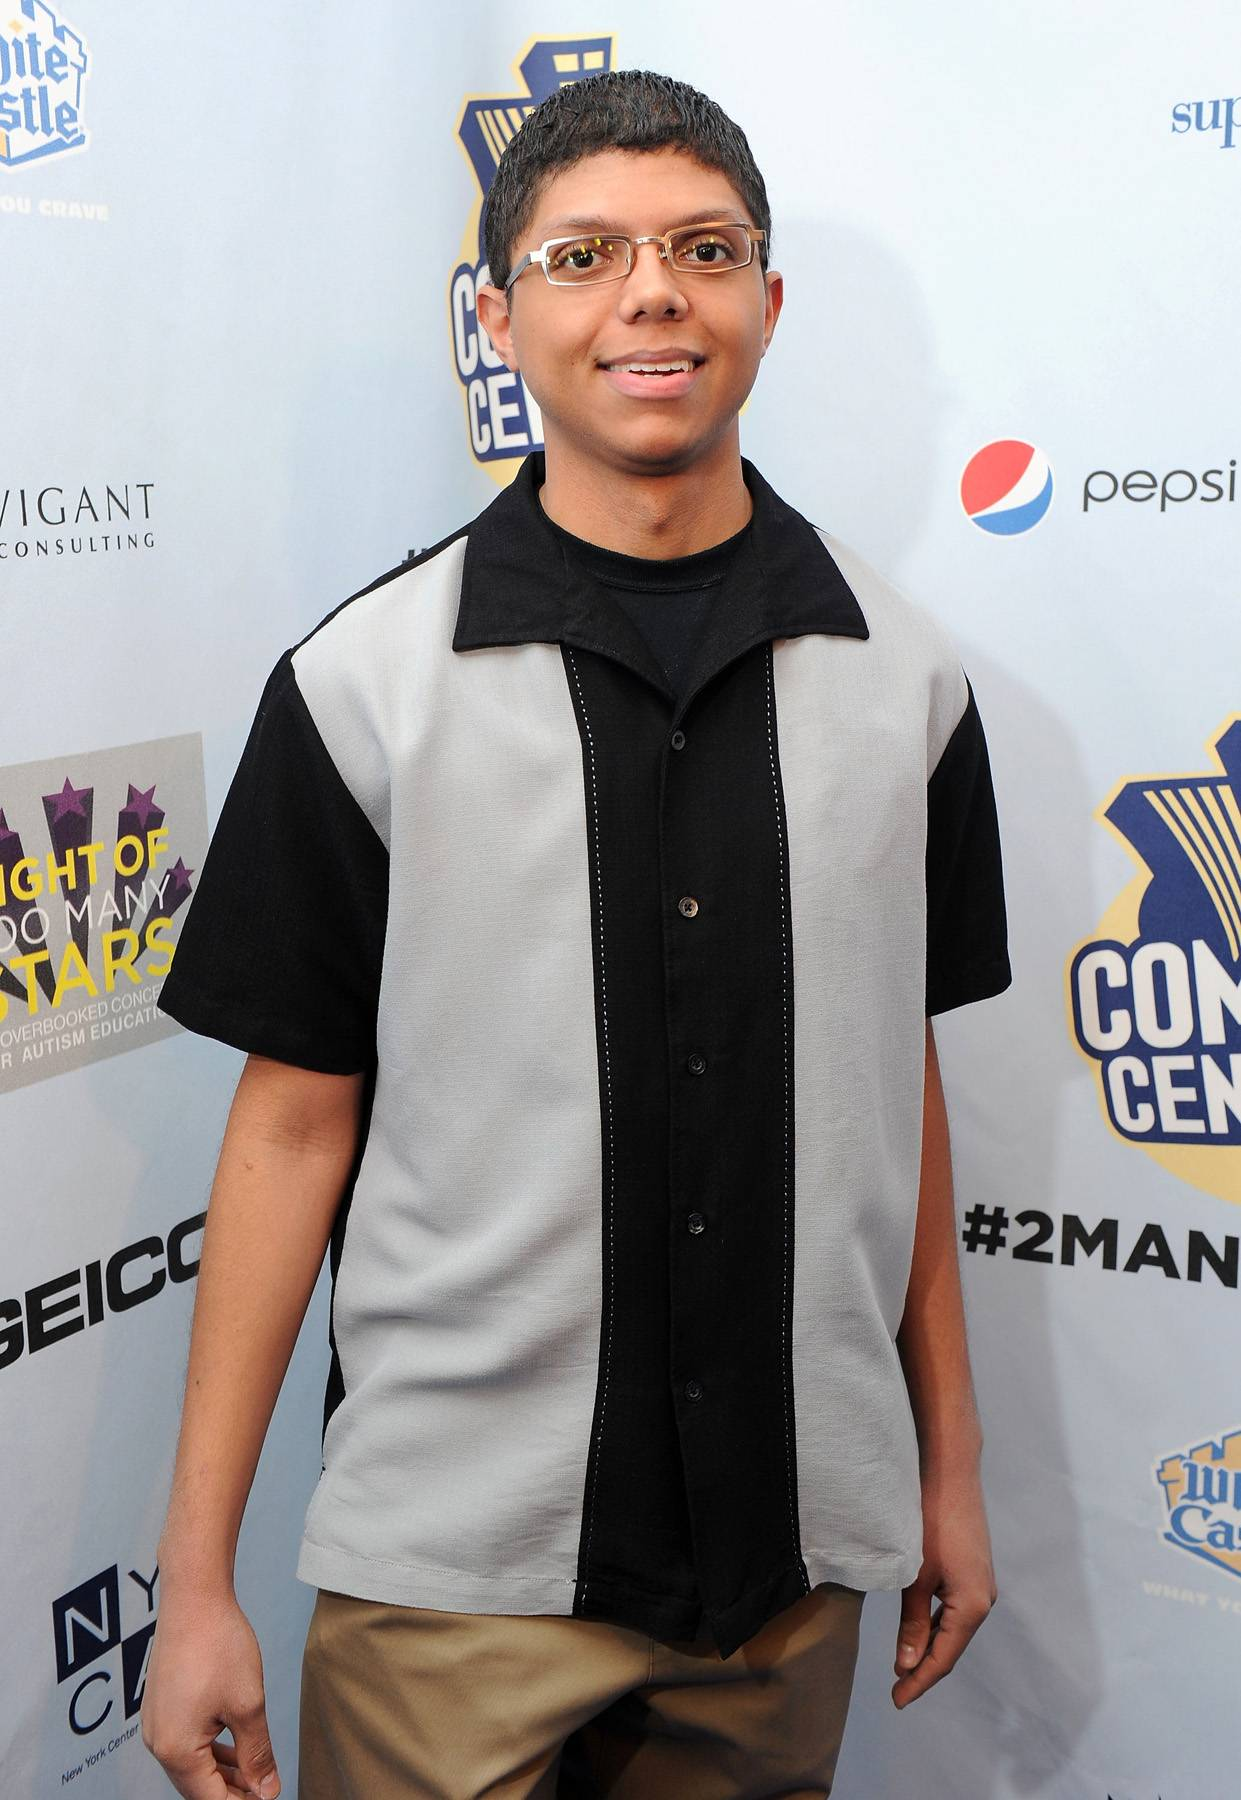 """Tay Zonday - Unlikely baritone Tay Zonday got his 15 minutes of YouTube fame when his bizarre video for """"Chocolate Rain"""" caught fire?it's currently at 88 million views. Though Zonday's fame was fleeting, he still has hundreds of thousands of YouTube subscribers, and his videos still stack up millions of clicks.  (Photo: Jason Kempin/Getty Images)"""